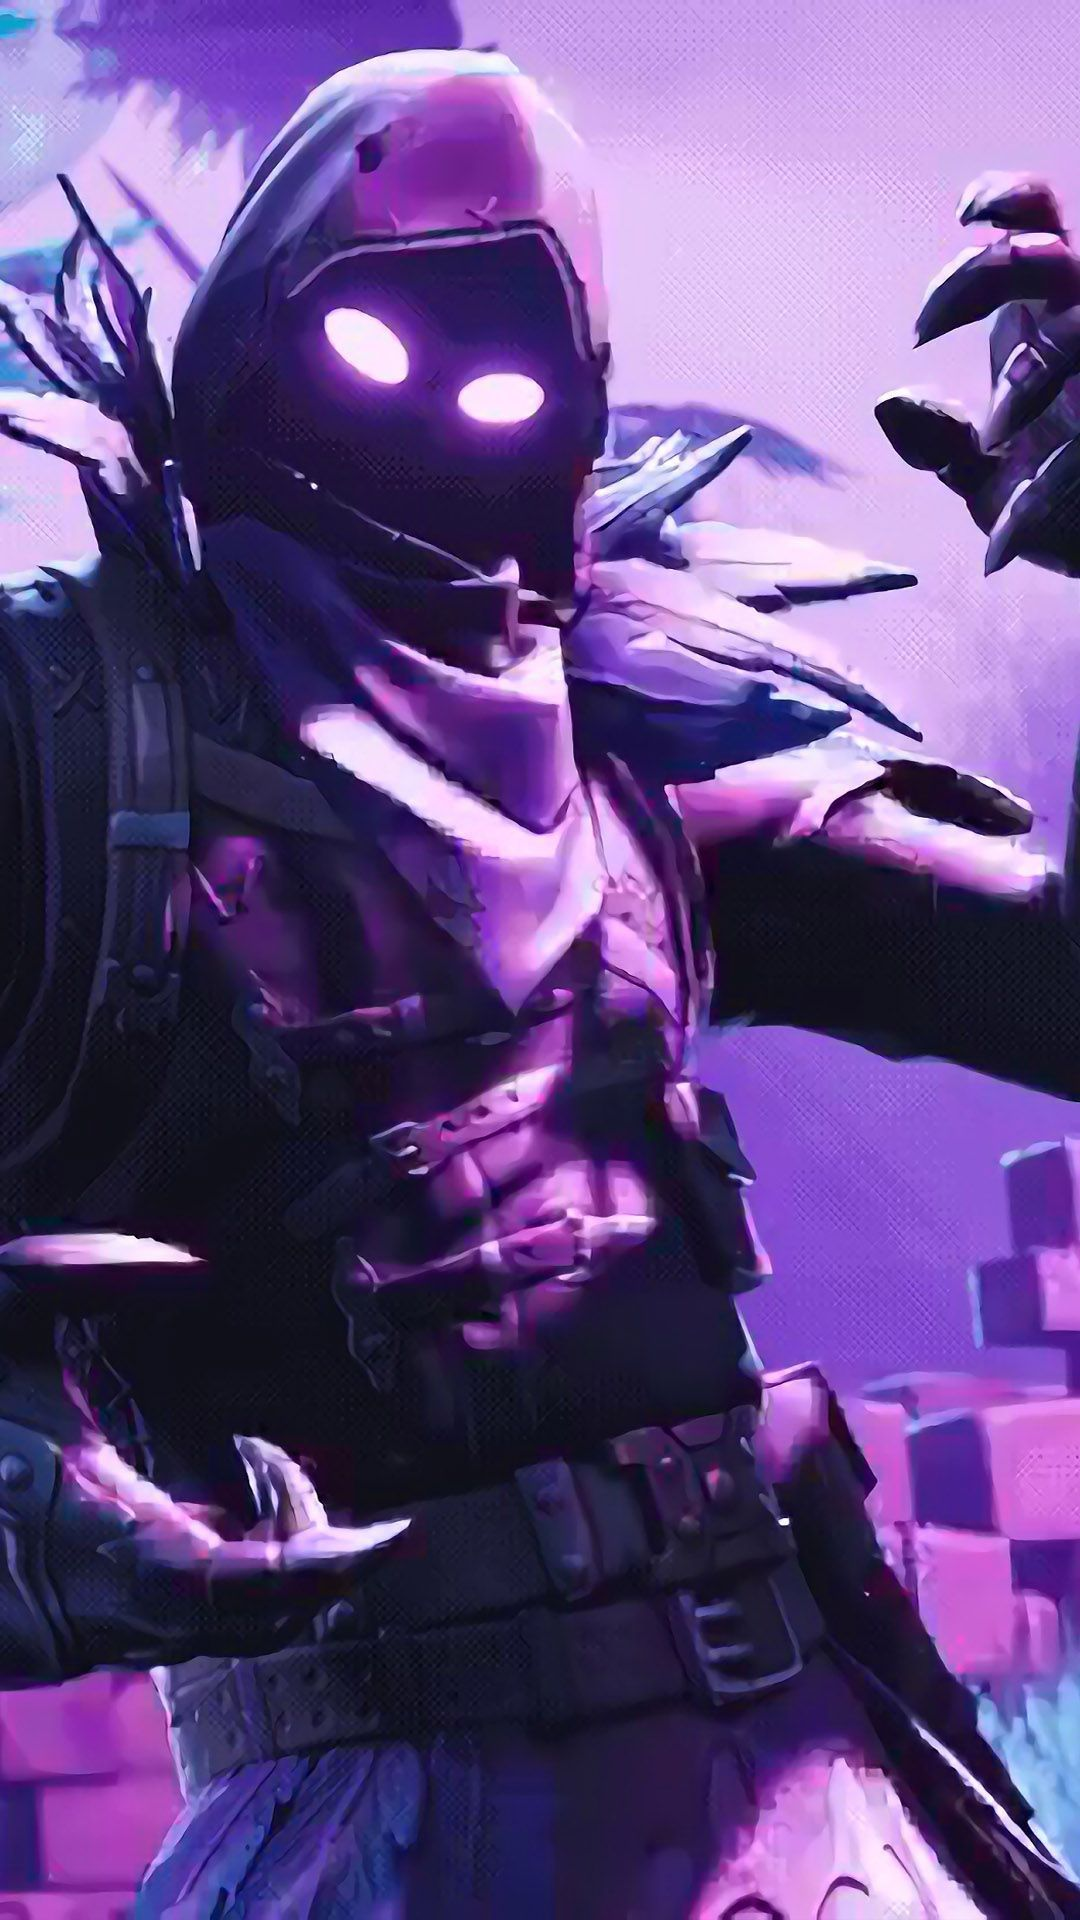 Cool Fortnite Wallpaper